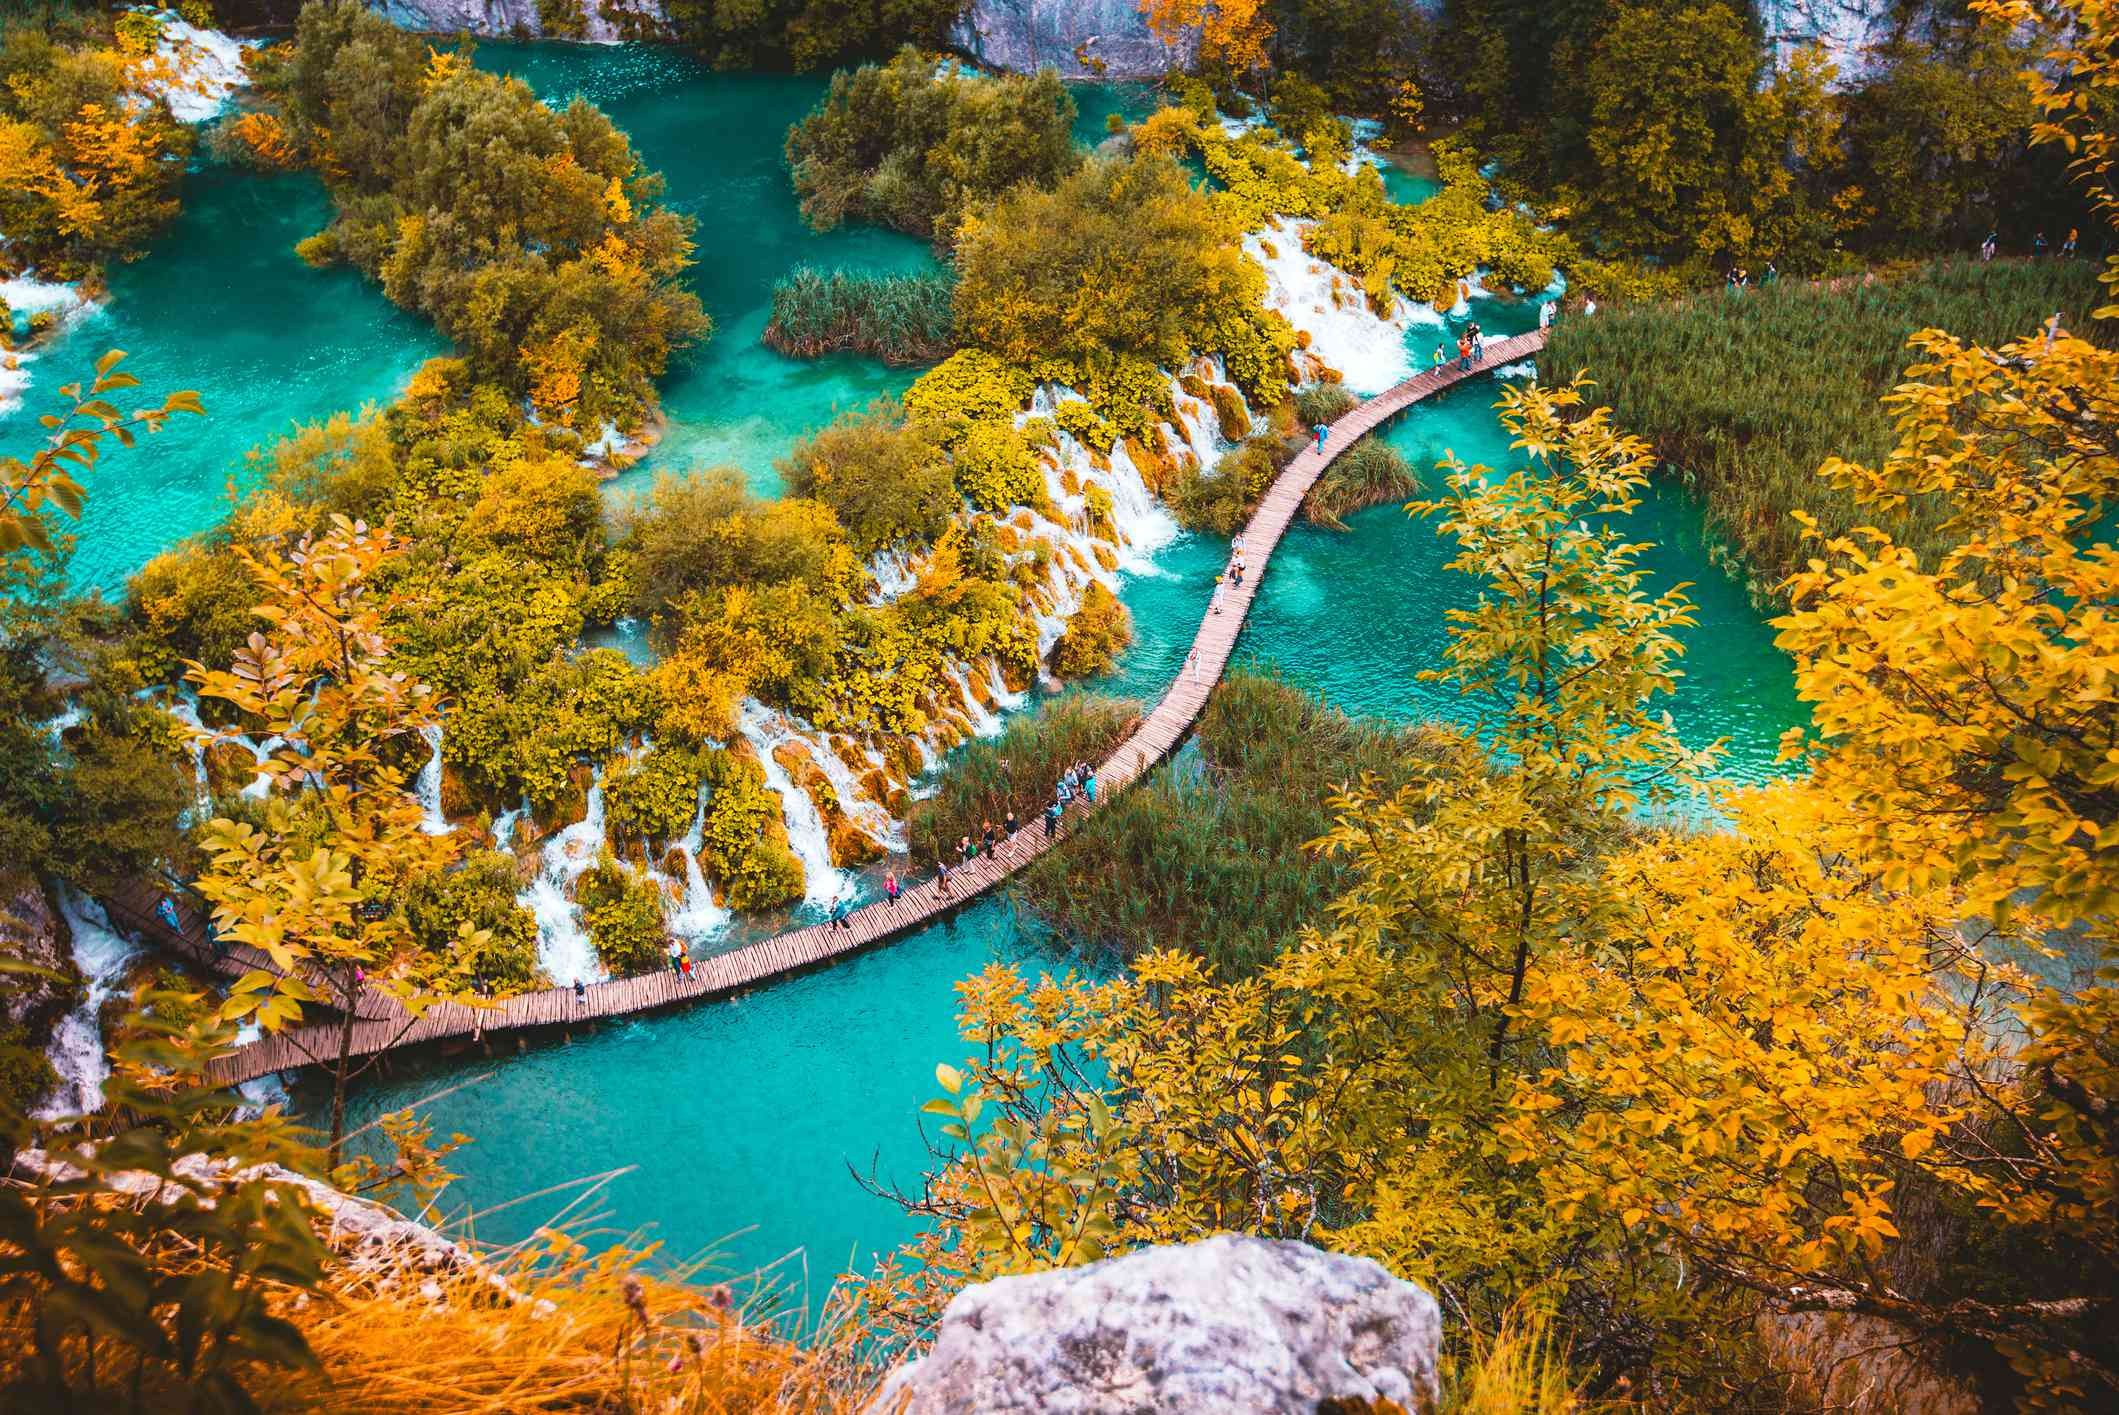 High Angle View Of people walking on a curving path over water with autumn trees